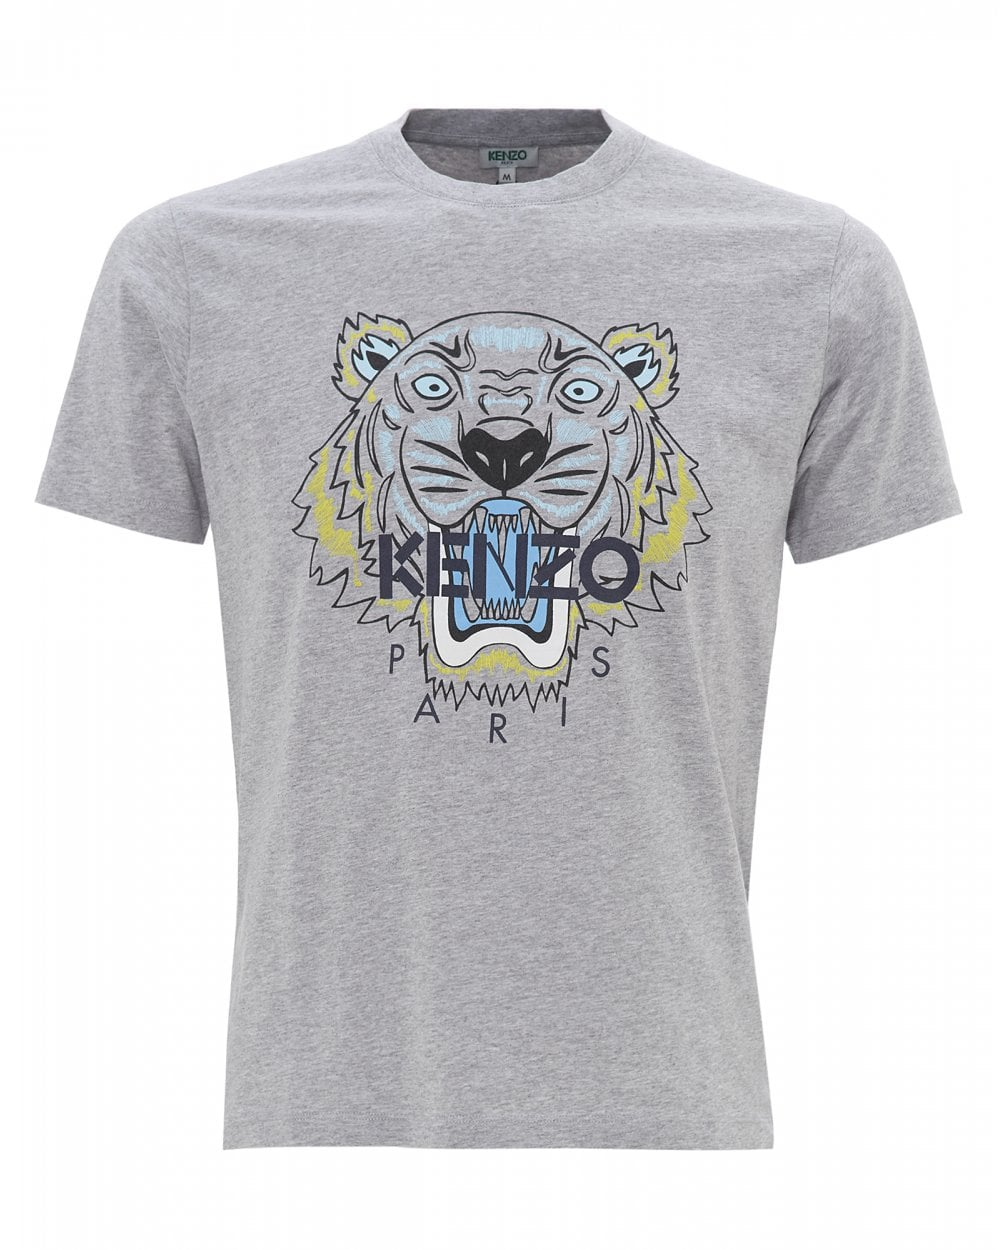 2c632d64 Kenzo Mens Tiger T-Shirt, Icon Pearl Grey Tee